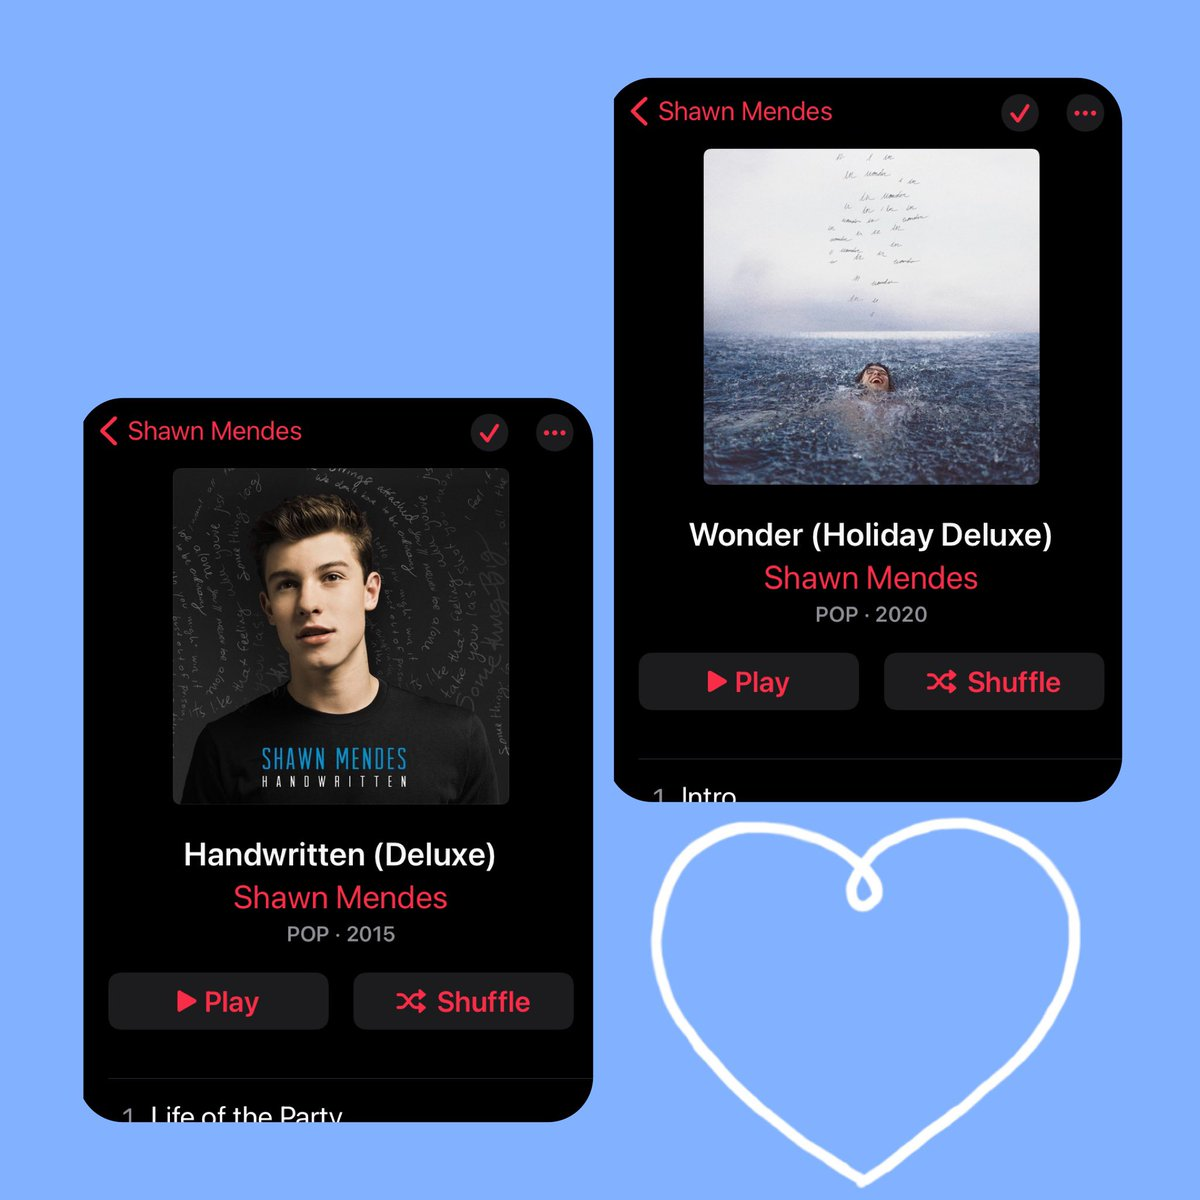 I am SOO proud of you Shawn i have been listening to your songs since day one i love the album so much I listen to the album everyday day. 305 makes my heart glow THANKS for this OUTSTANDING album @ShawnMendes #ShawnMendes #WONDER #WONDERTHEEXPERIENCE @ShawnAccess ❤️❤️❤️❤️❤️❤️